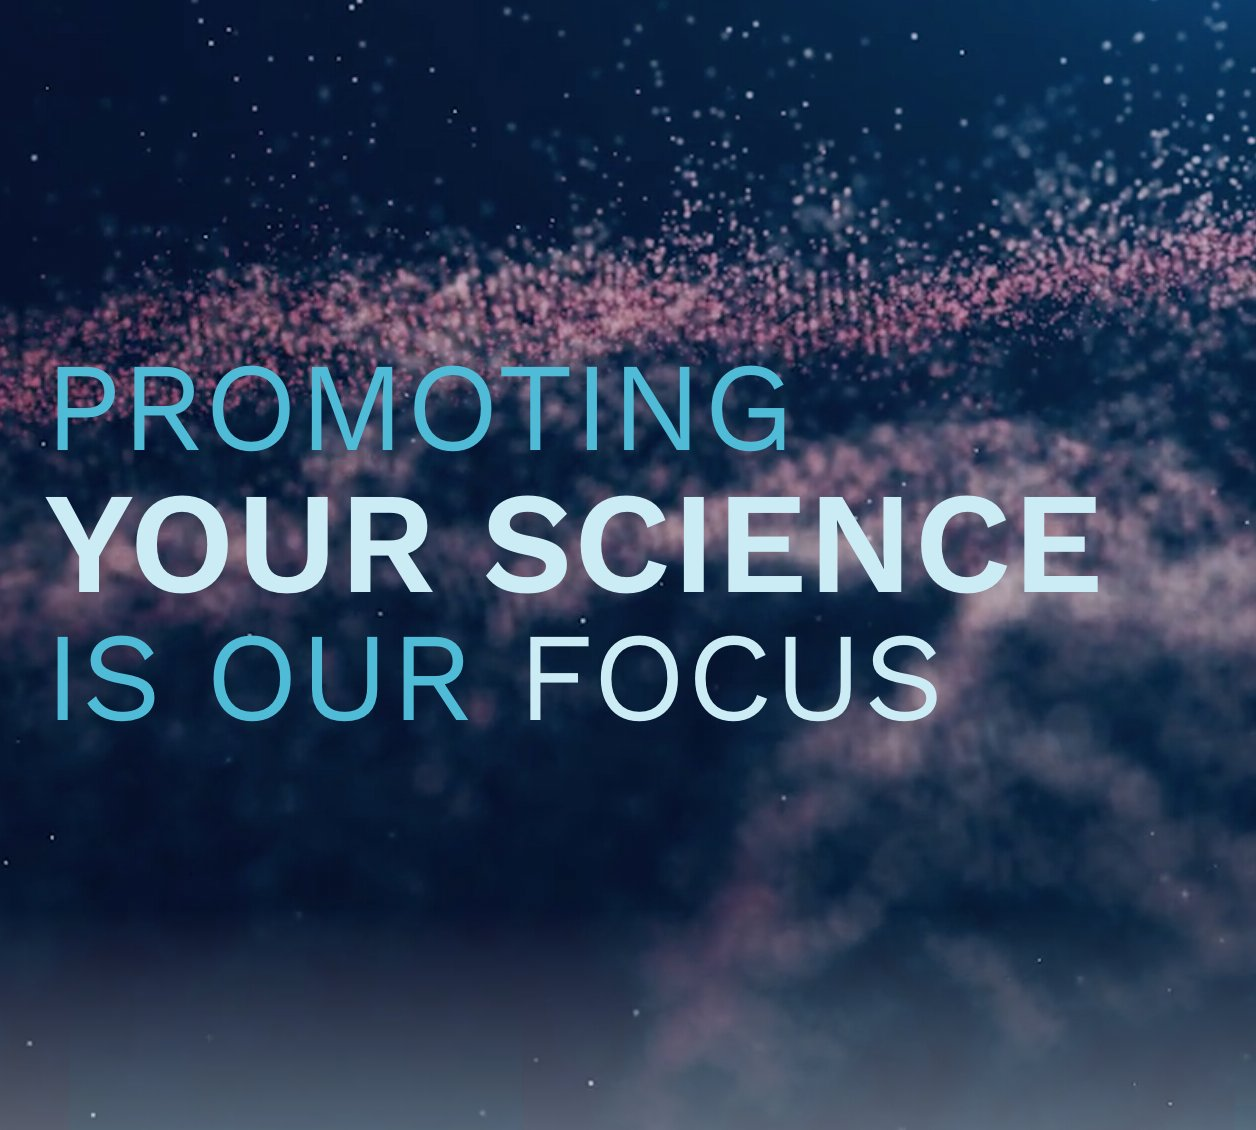 Promoting your science is our focus - ESCI